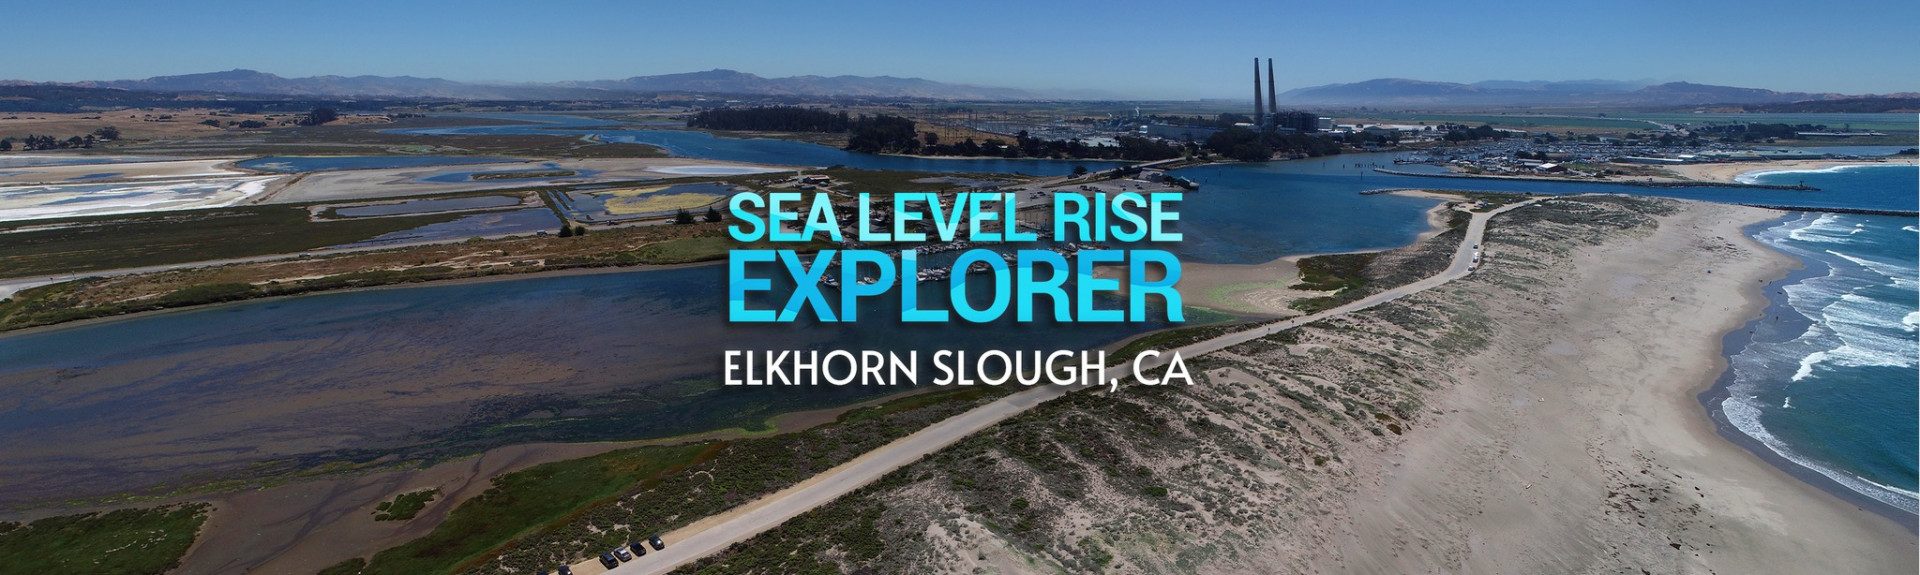 Explorador del Nivel Del Mar: Elkhorn Slough